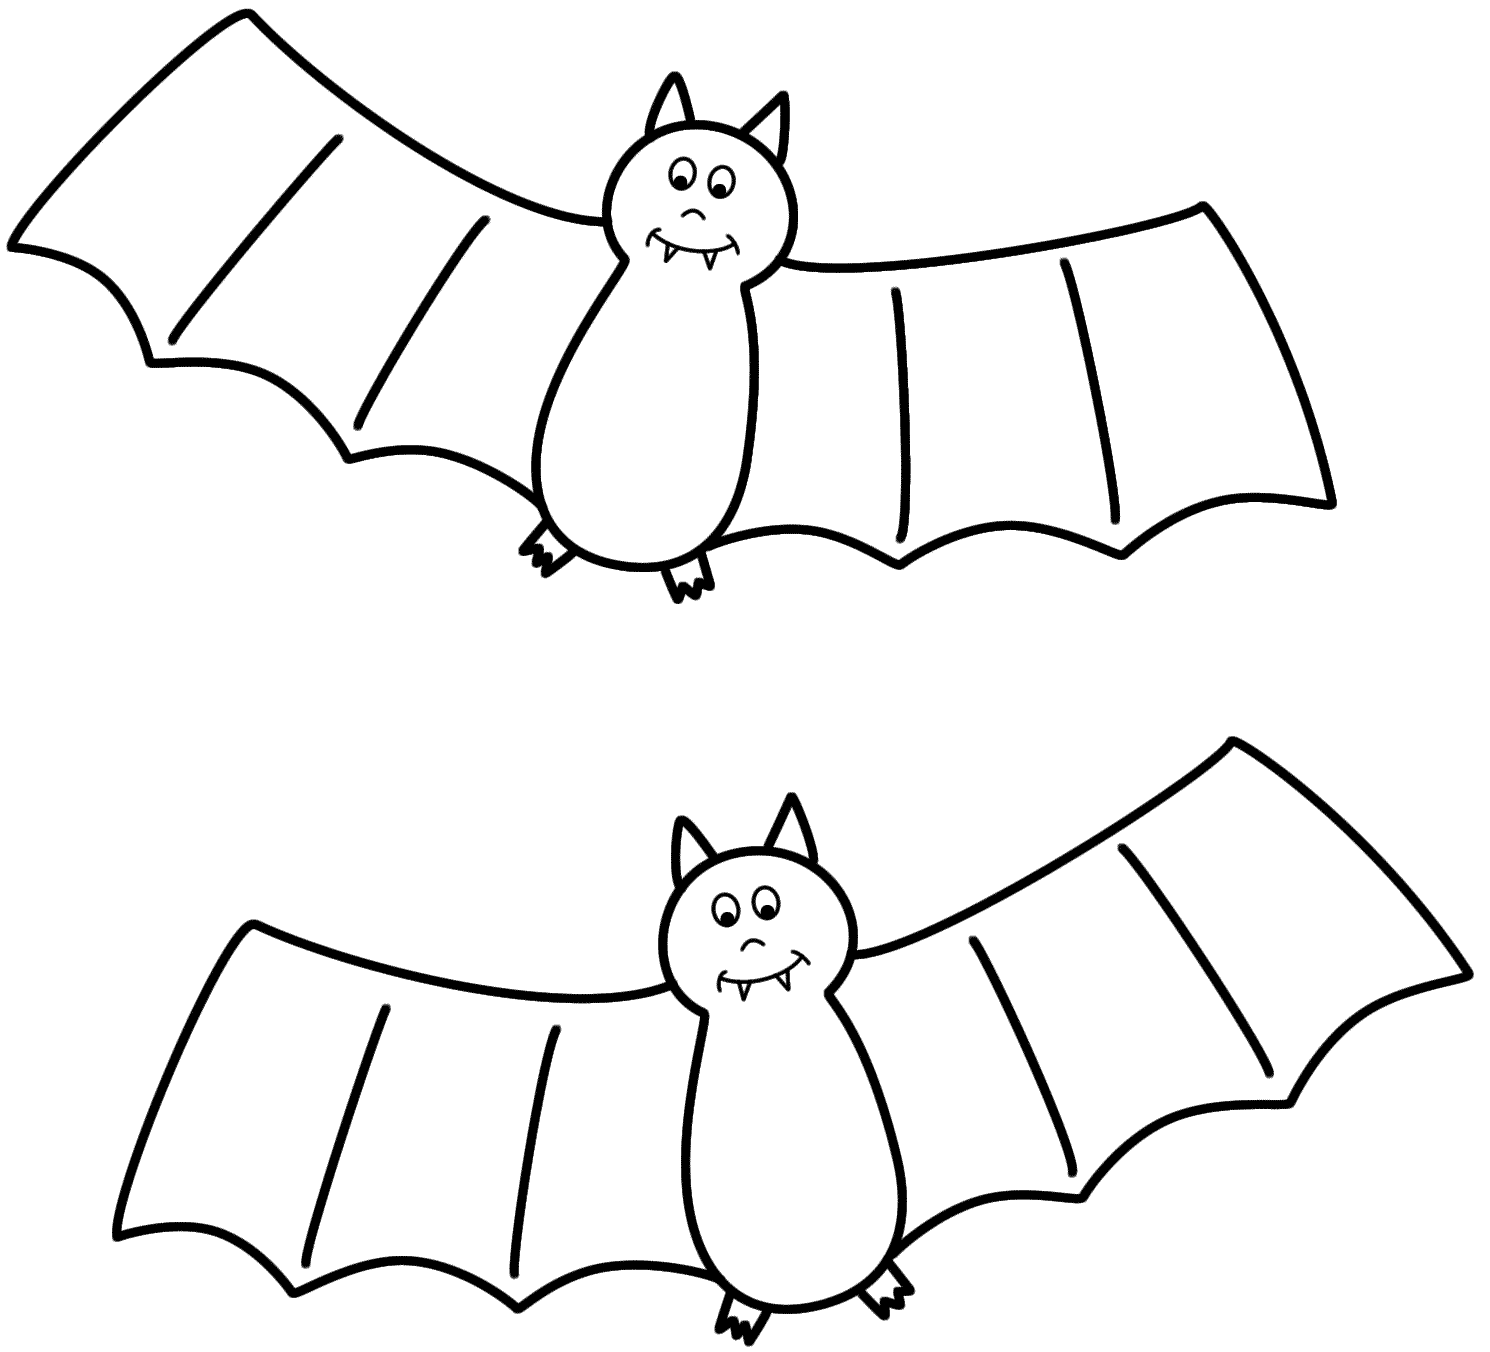 Bat coloring #12, Download drawings